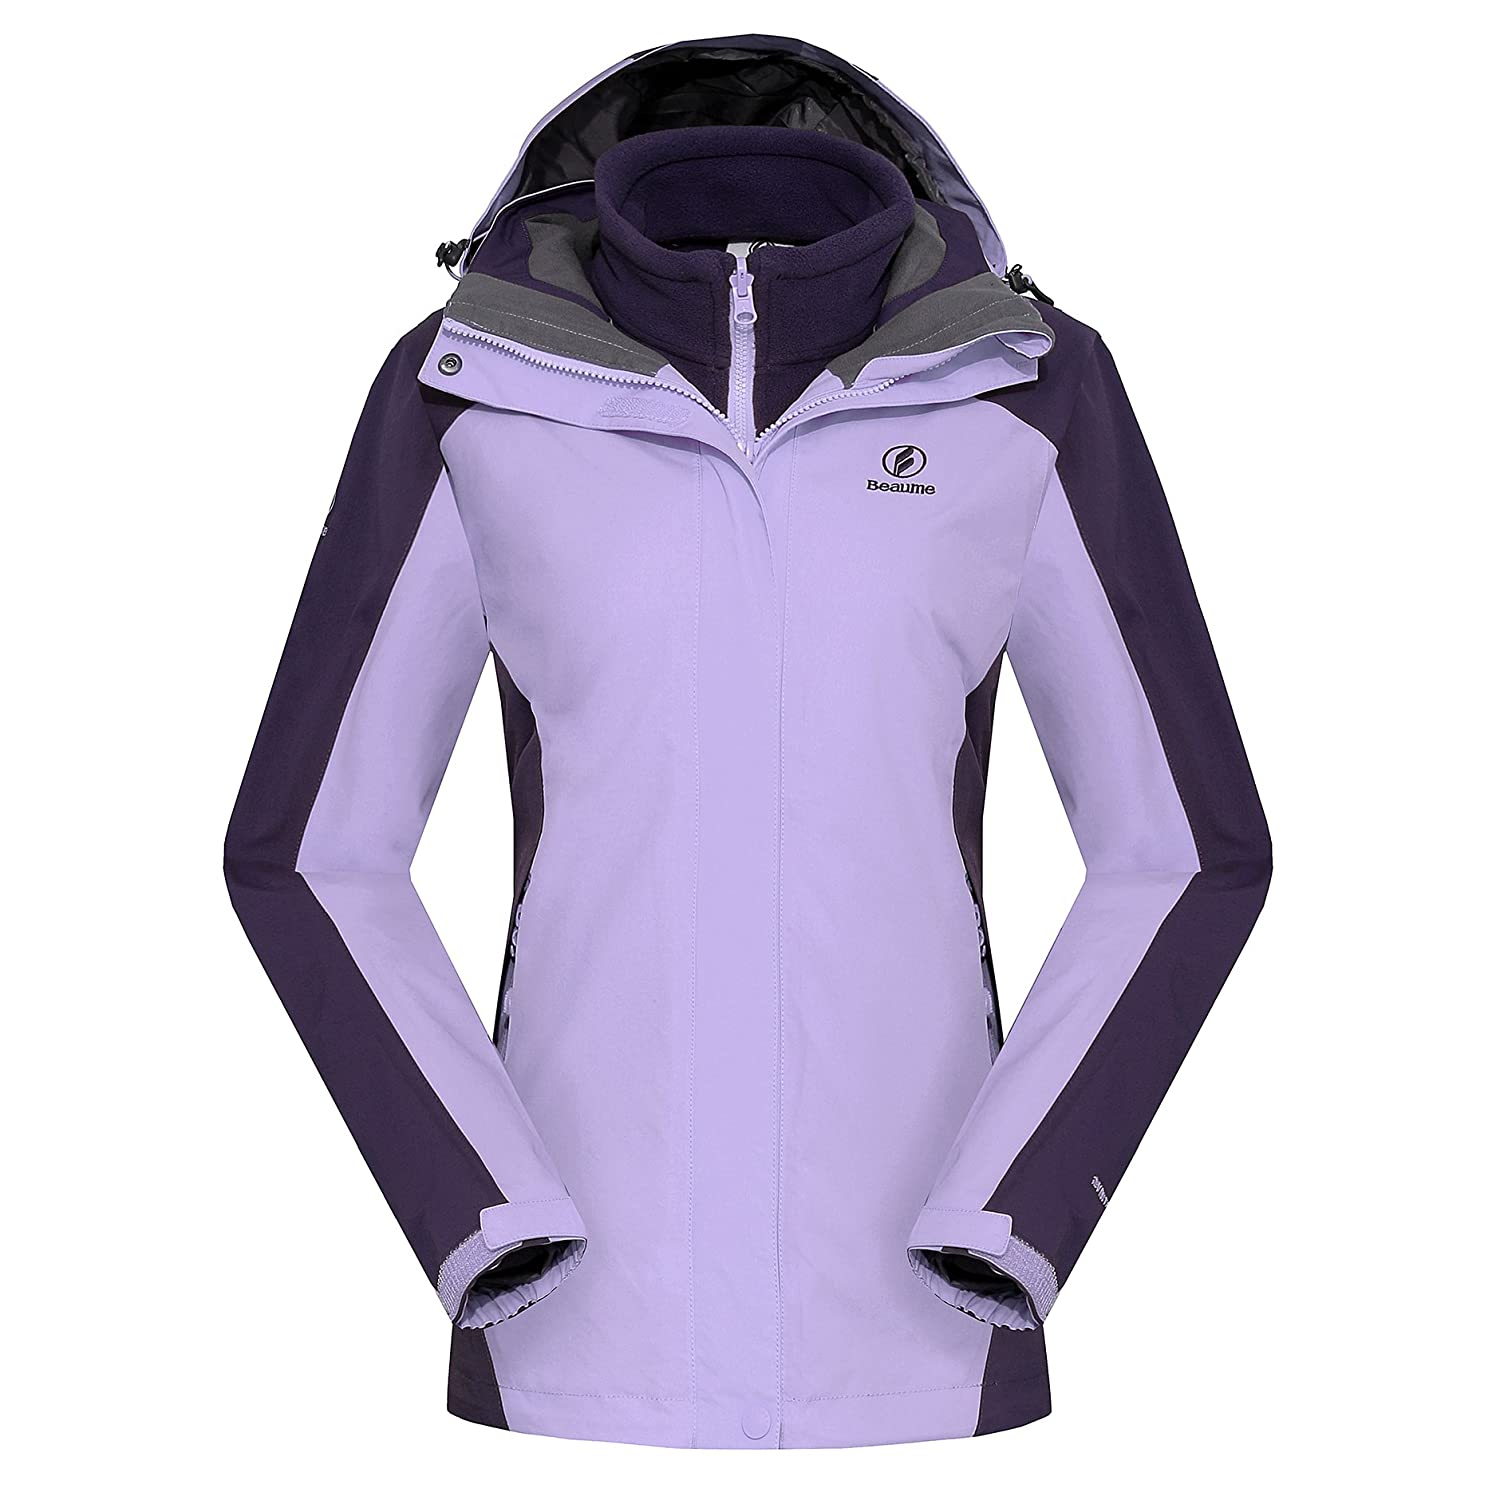 Beaume Women Waterproof Jacket Softshell Jackets with Hood-3 In 1 - 3 colors